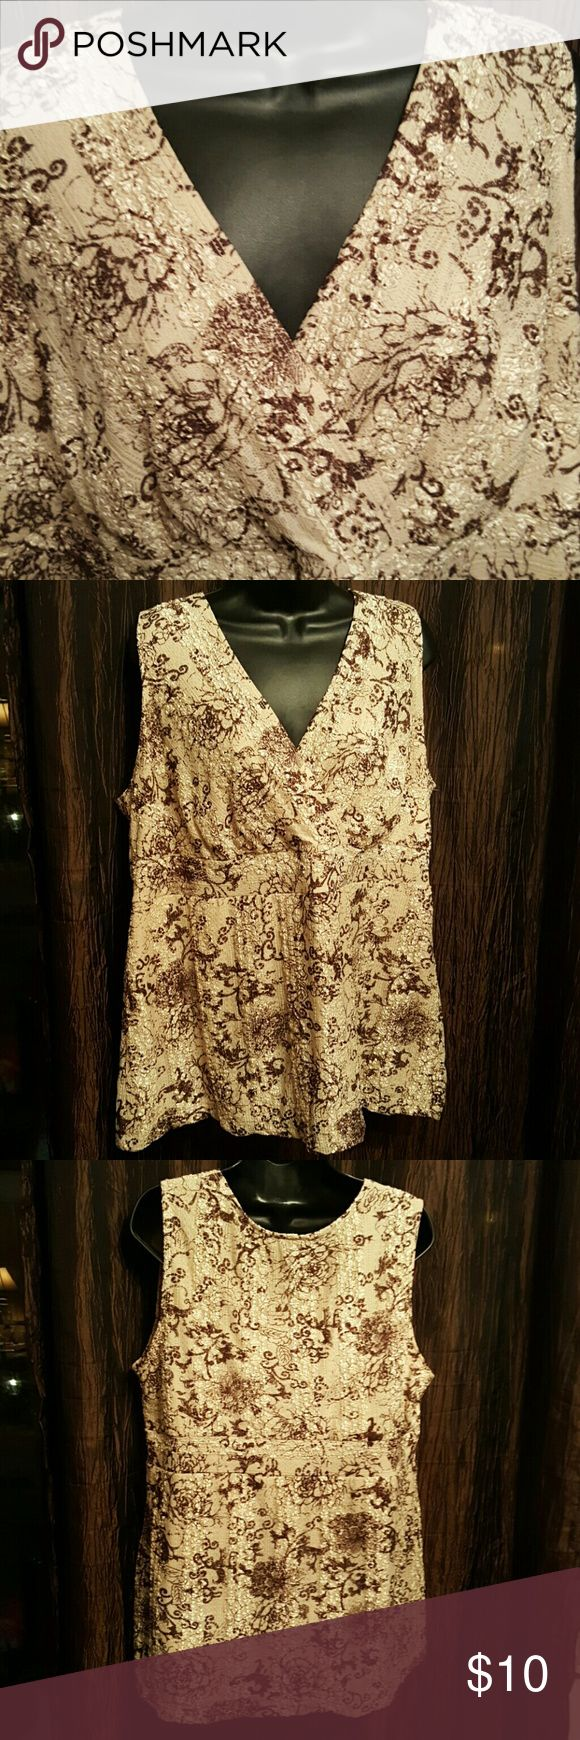 """Lane Bryant Nice sleeveless Top. Fully lined.  Length 28"""" Bust measures up too 40  ( pit too pit). Lane Bryant Tops Blouses"""